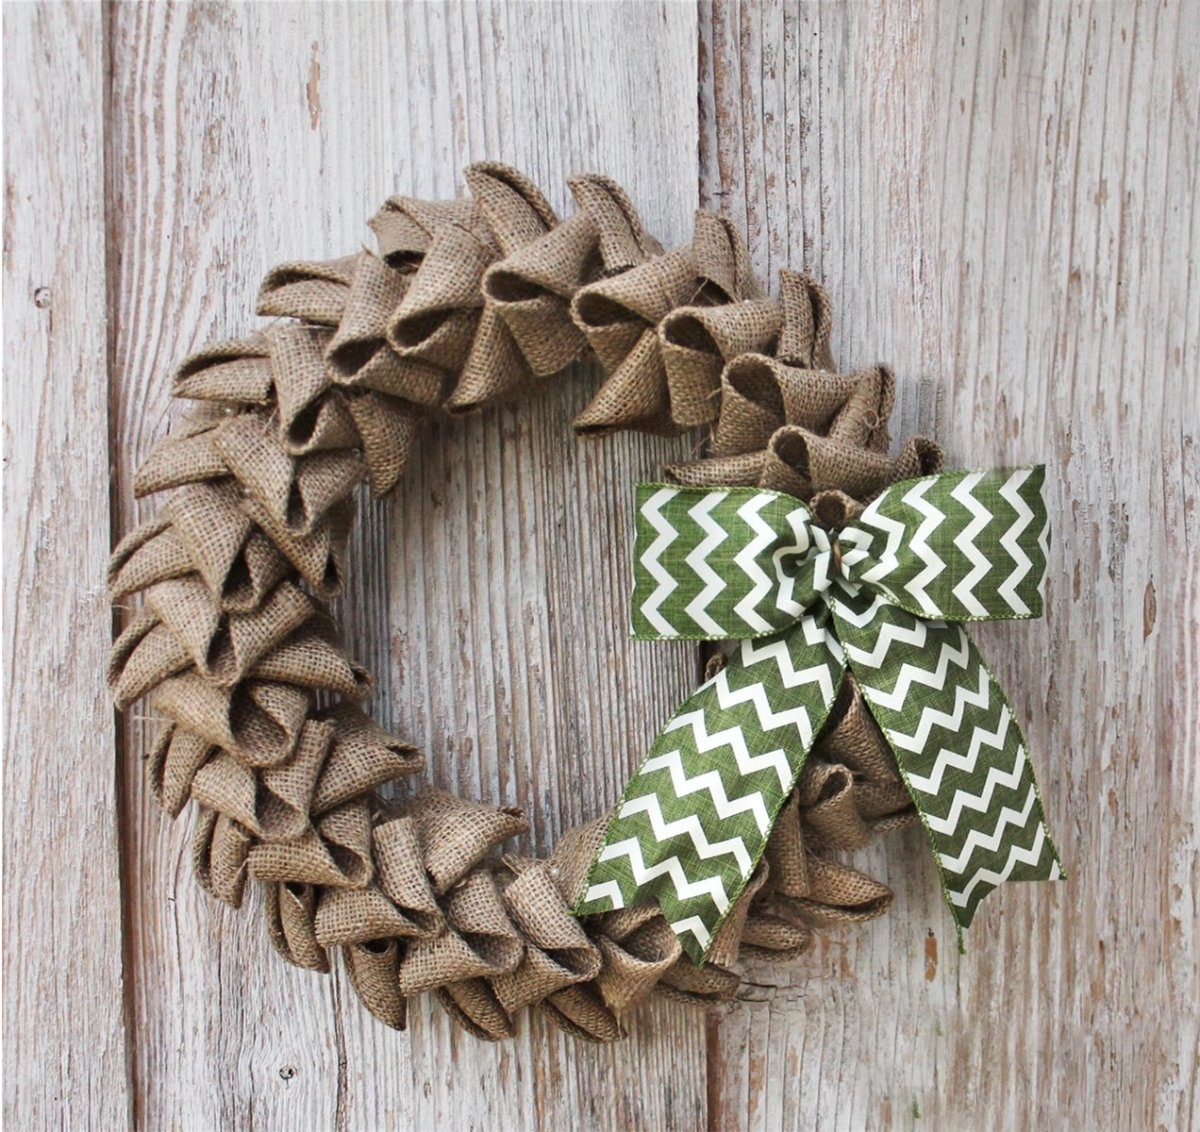 The combination of the burlap and the chevron pattern feels homey, slightly rustic and chic.